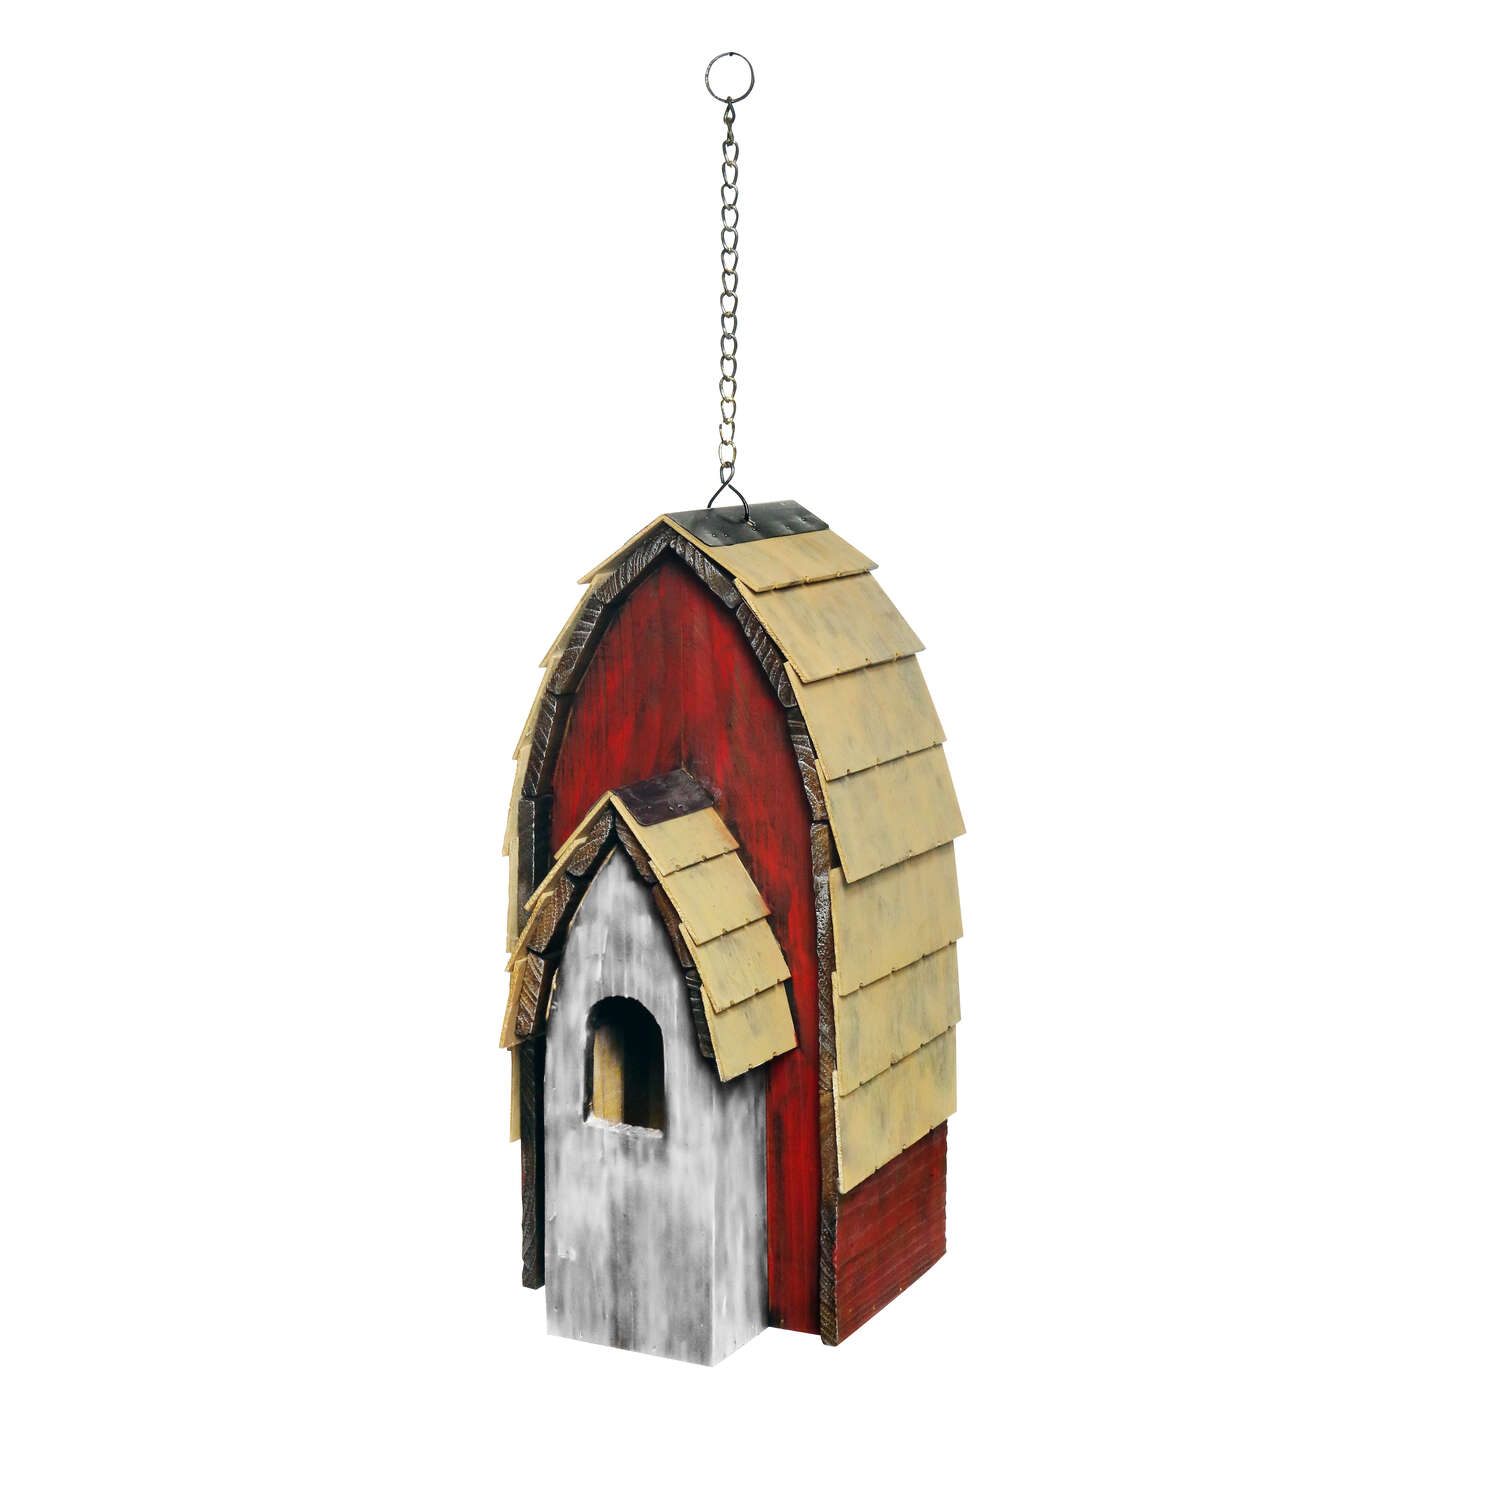 Alpine  16 in. H x 8 in. W x 8 in. L Wood  Bird House